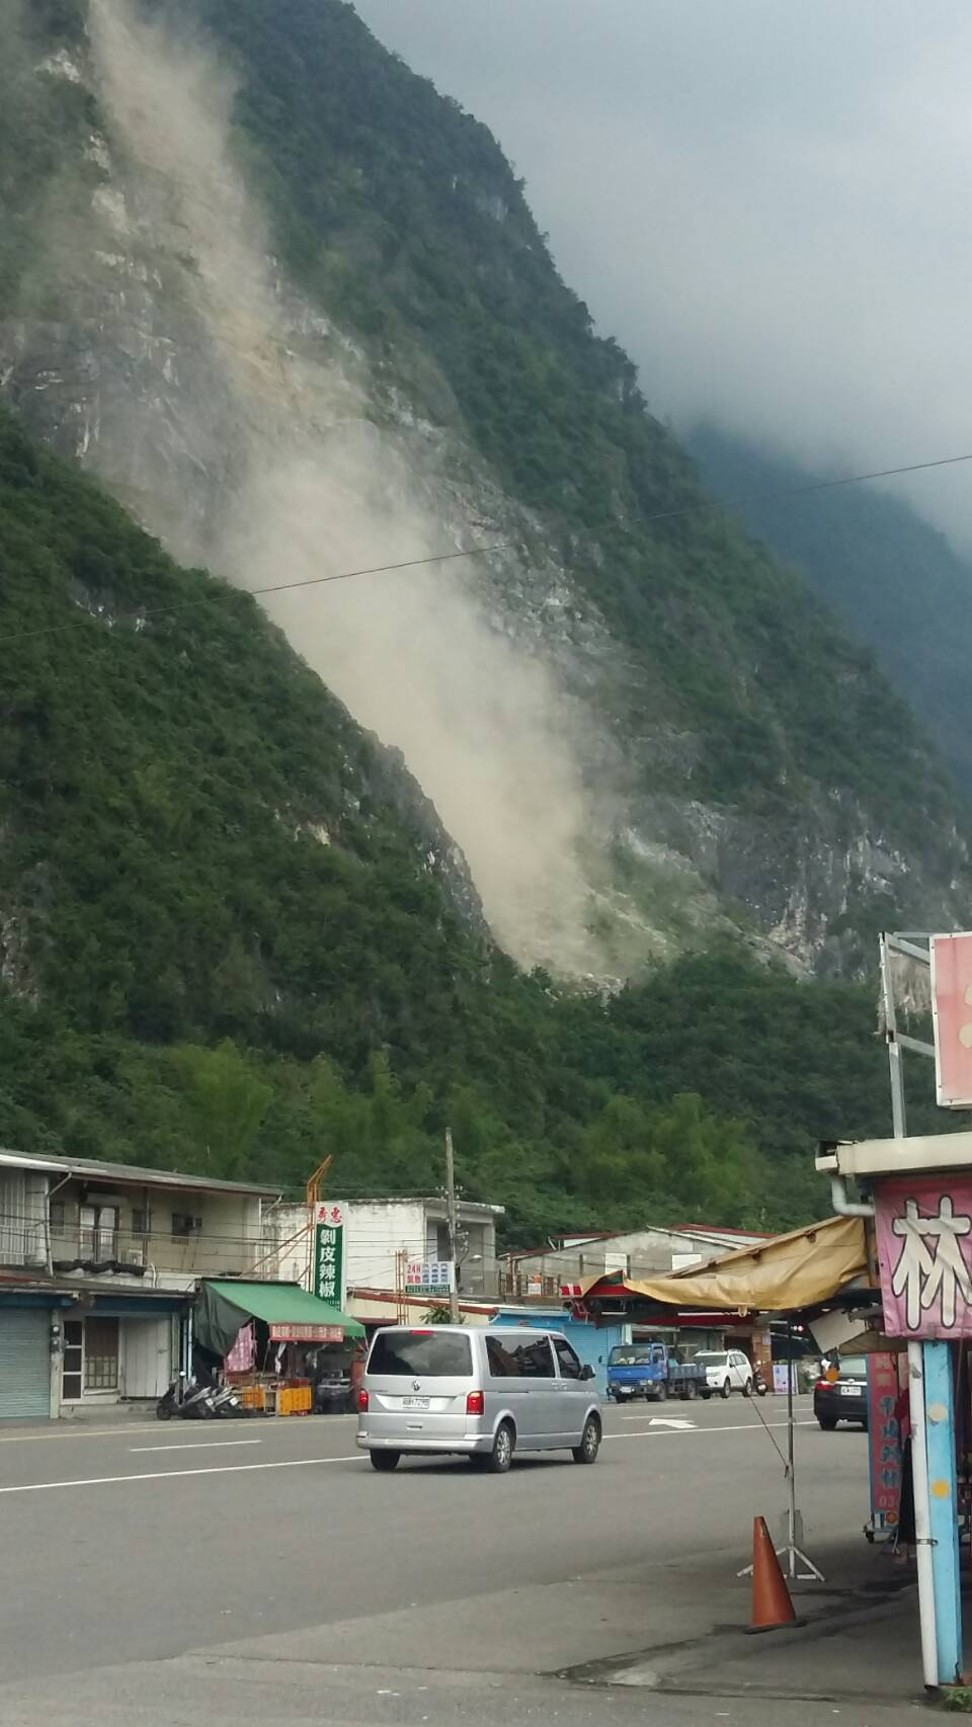 A landslide near Hualien. Photo: Handout